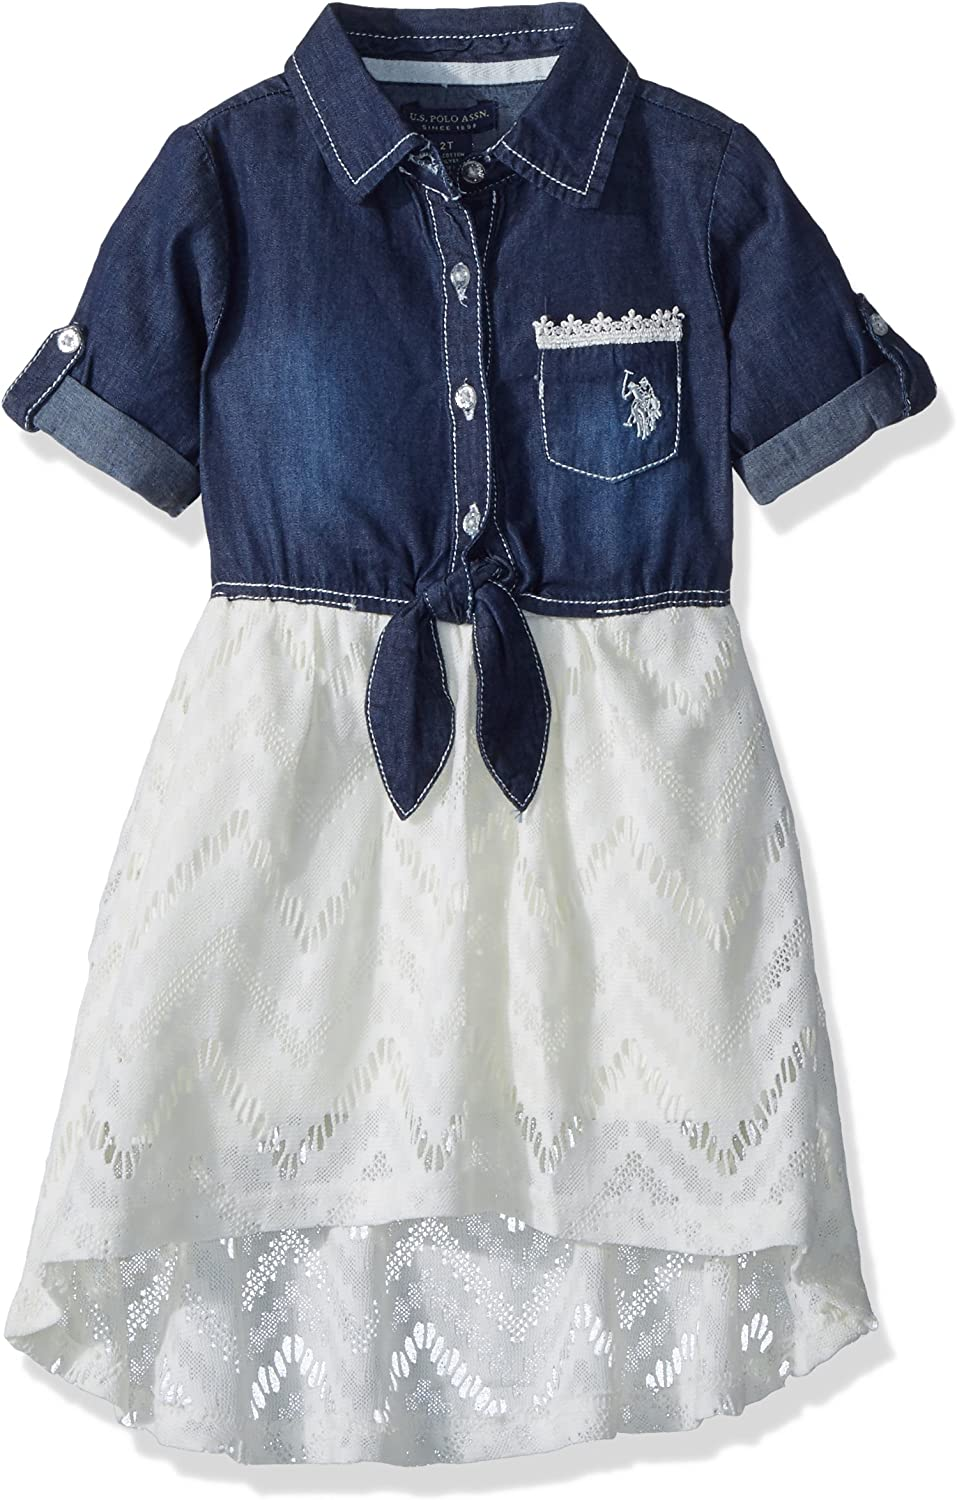 U.S. Polo Assn. Girls Toddler Casual Dress, for Look lace Vanilla ...